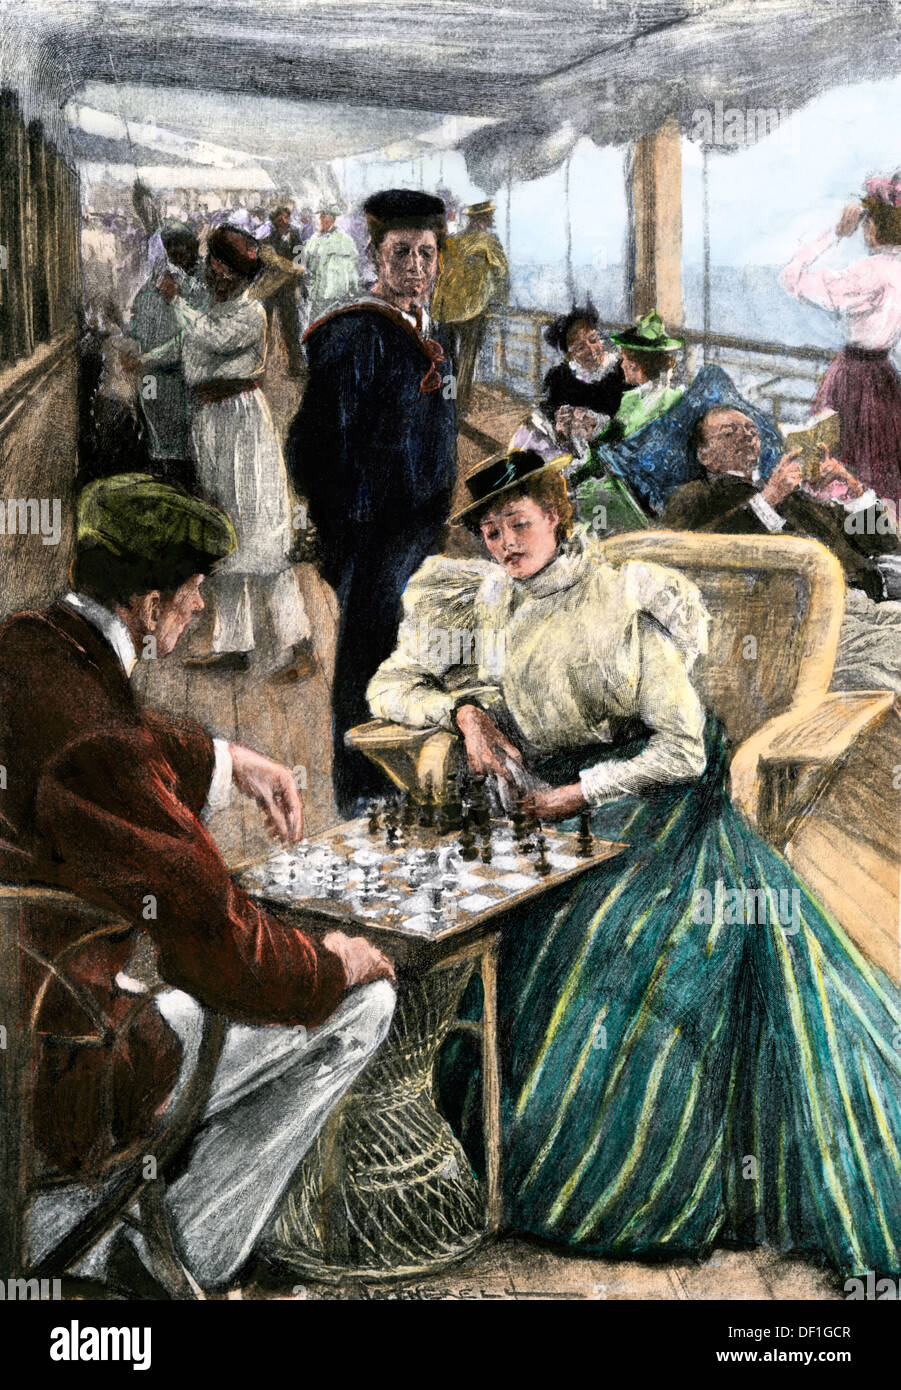 Passengers' afternoon recreation on the deck of a P & O steamship circa 1900. Hand-colored woodcut - Stock Image